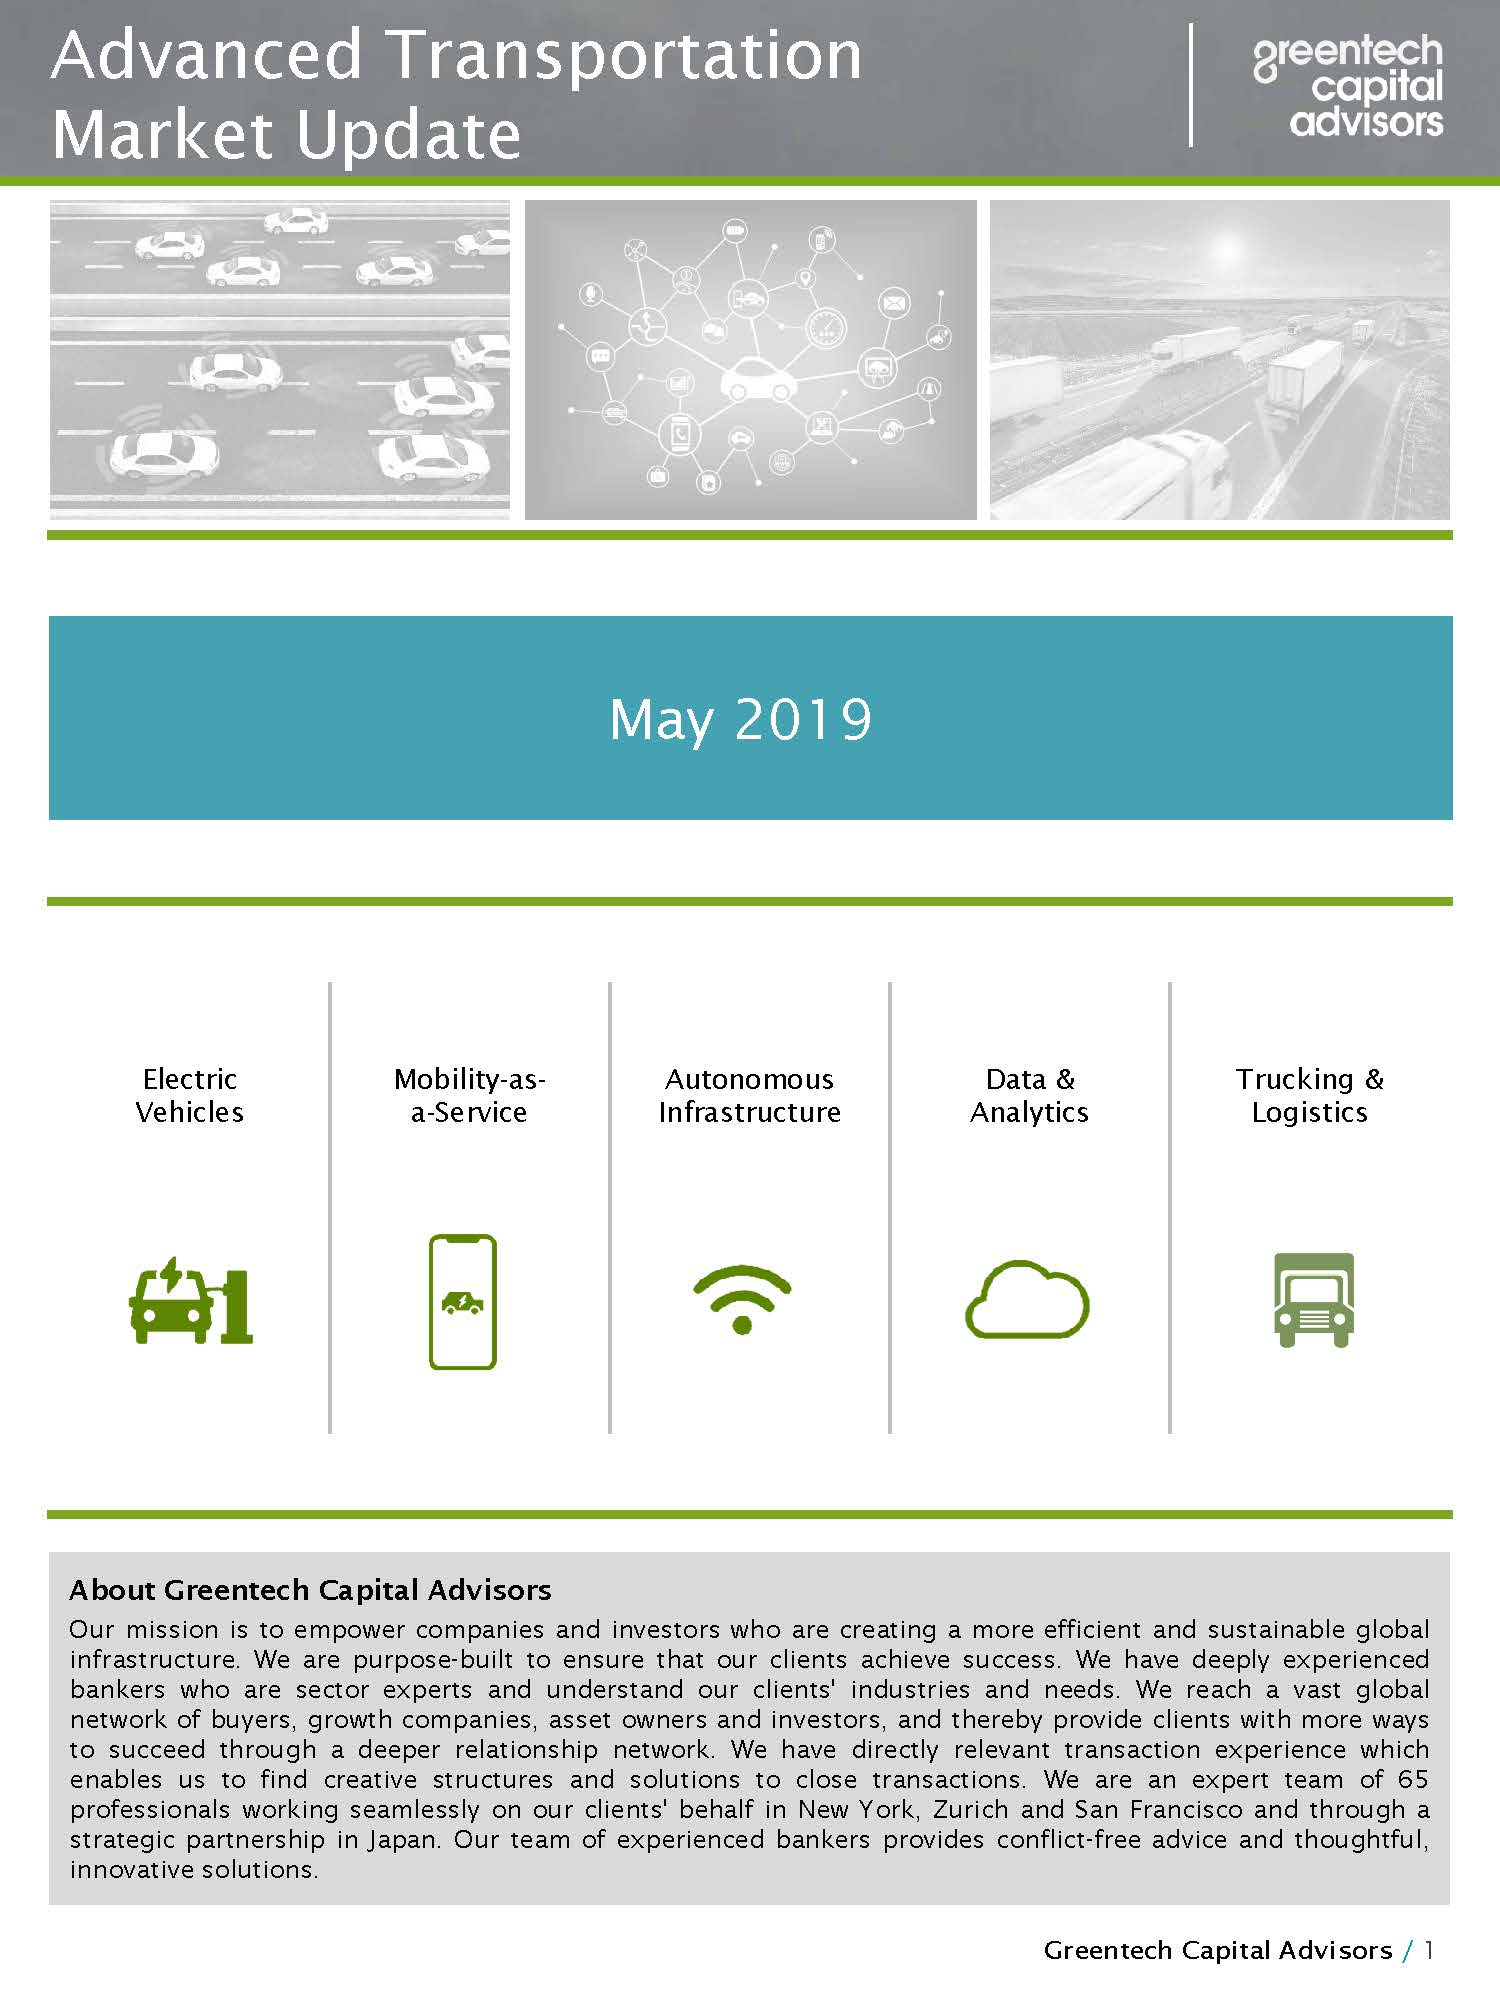 Advanced Mobility Market Update - May 2019